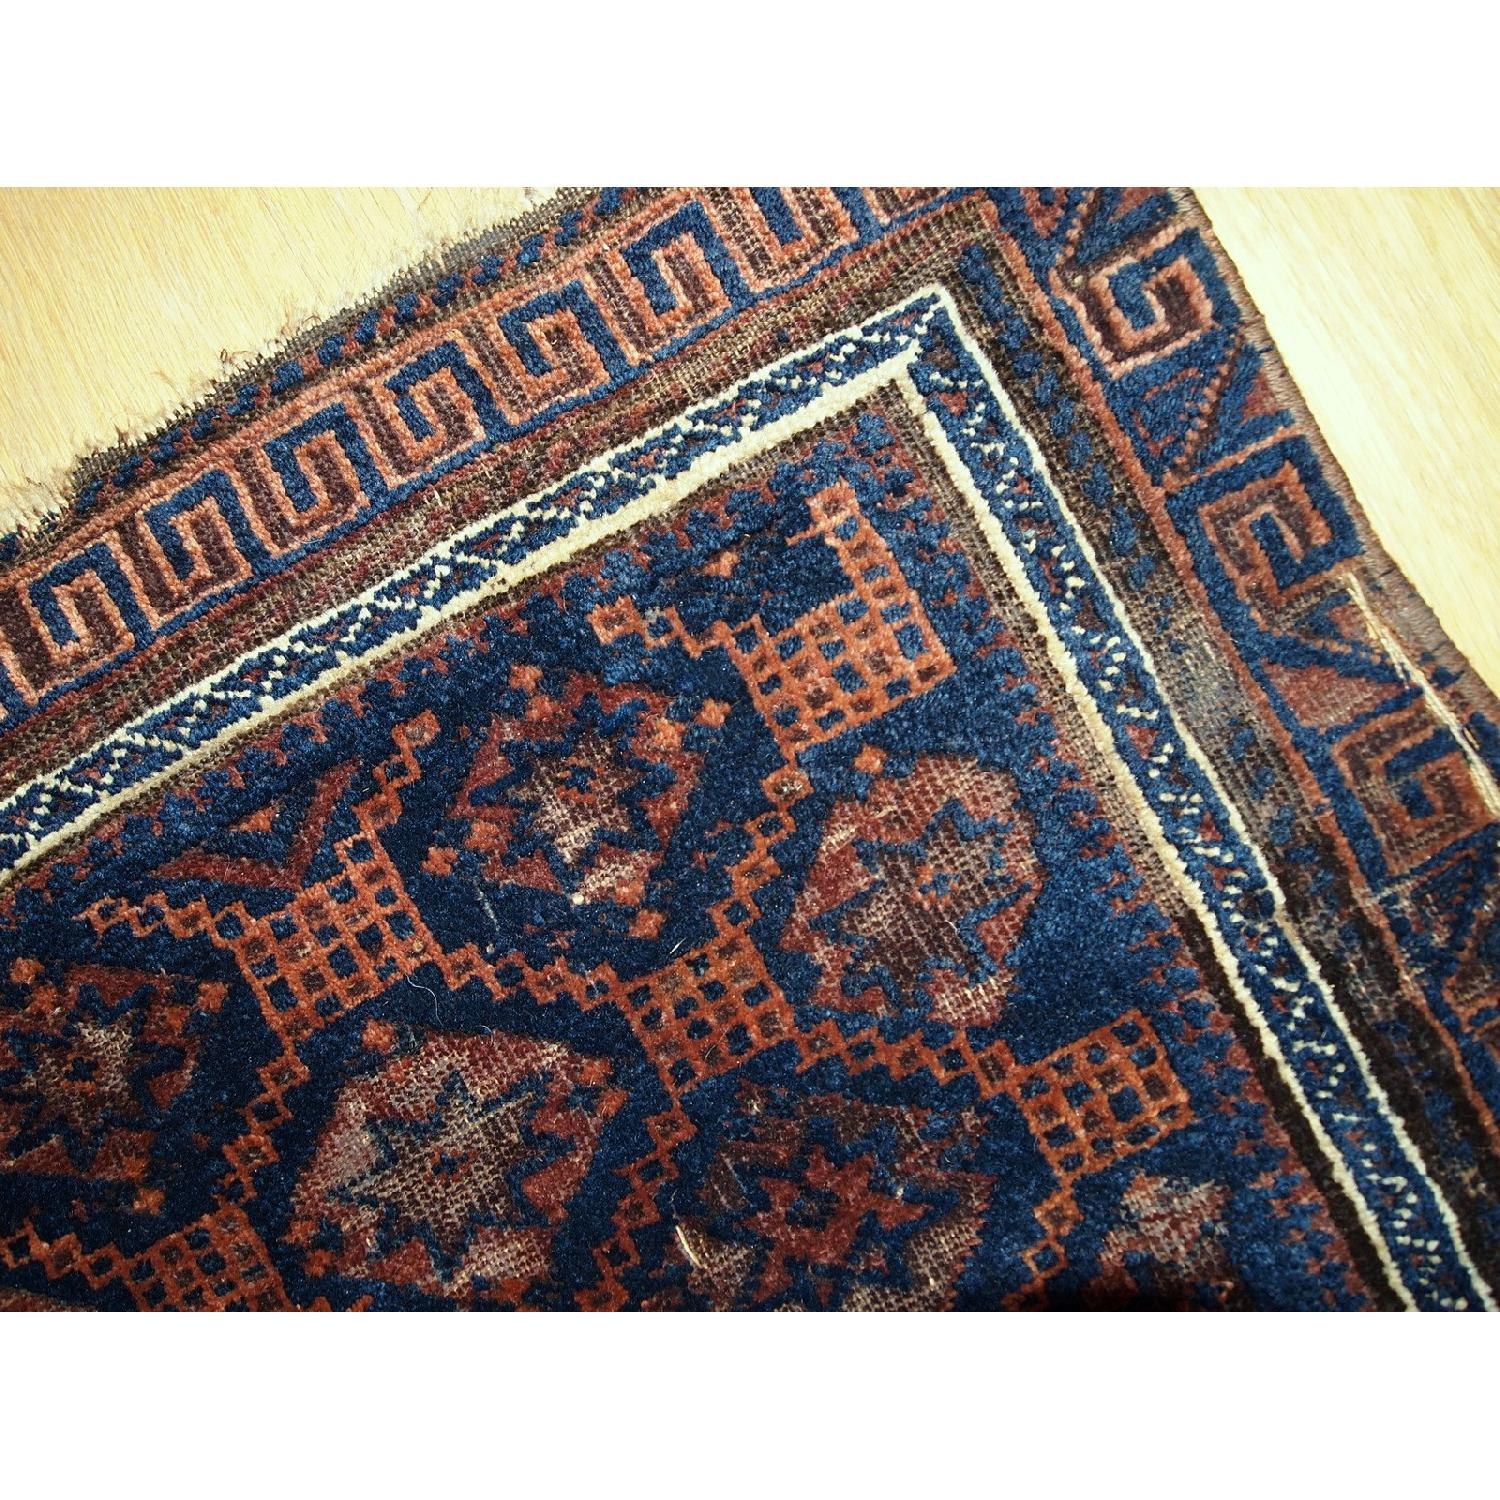 Antique Handmade Collectible Afghan Baluch Bag Face Rug - image-7